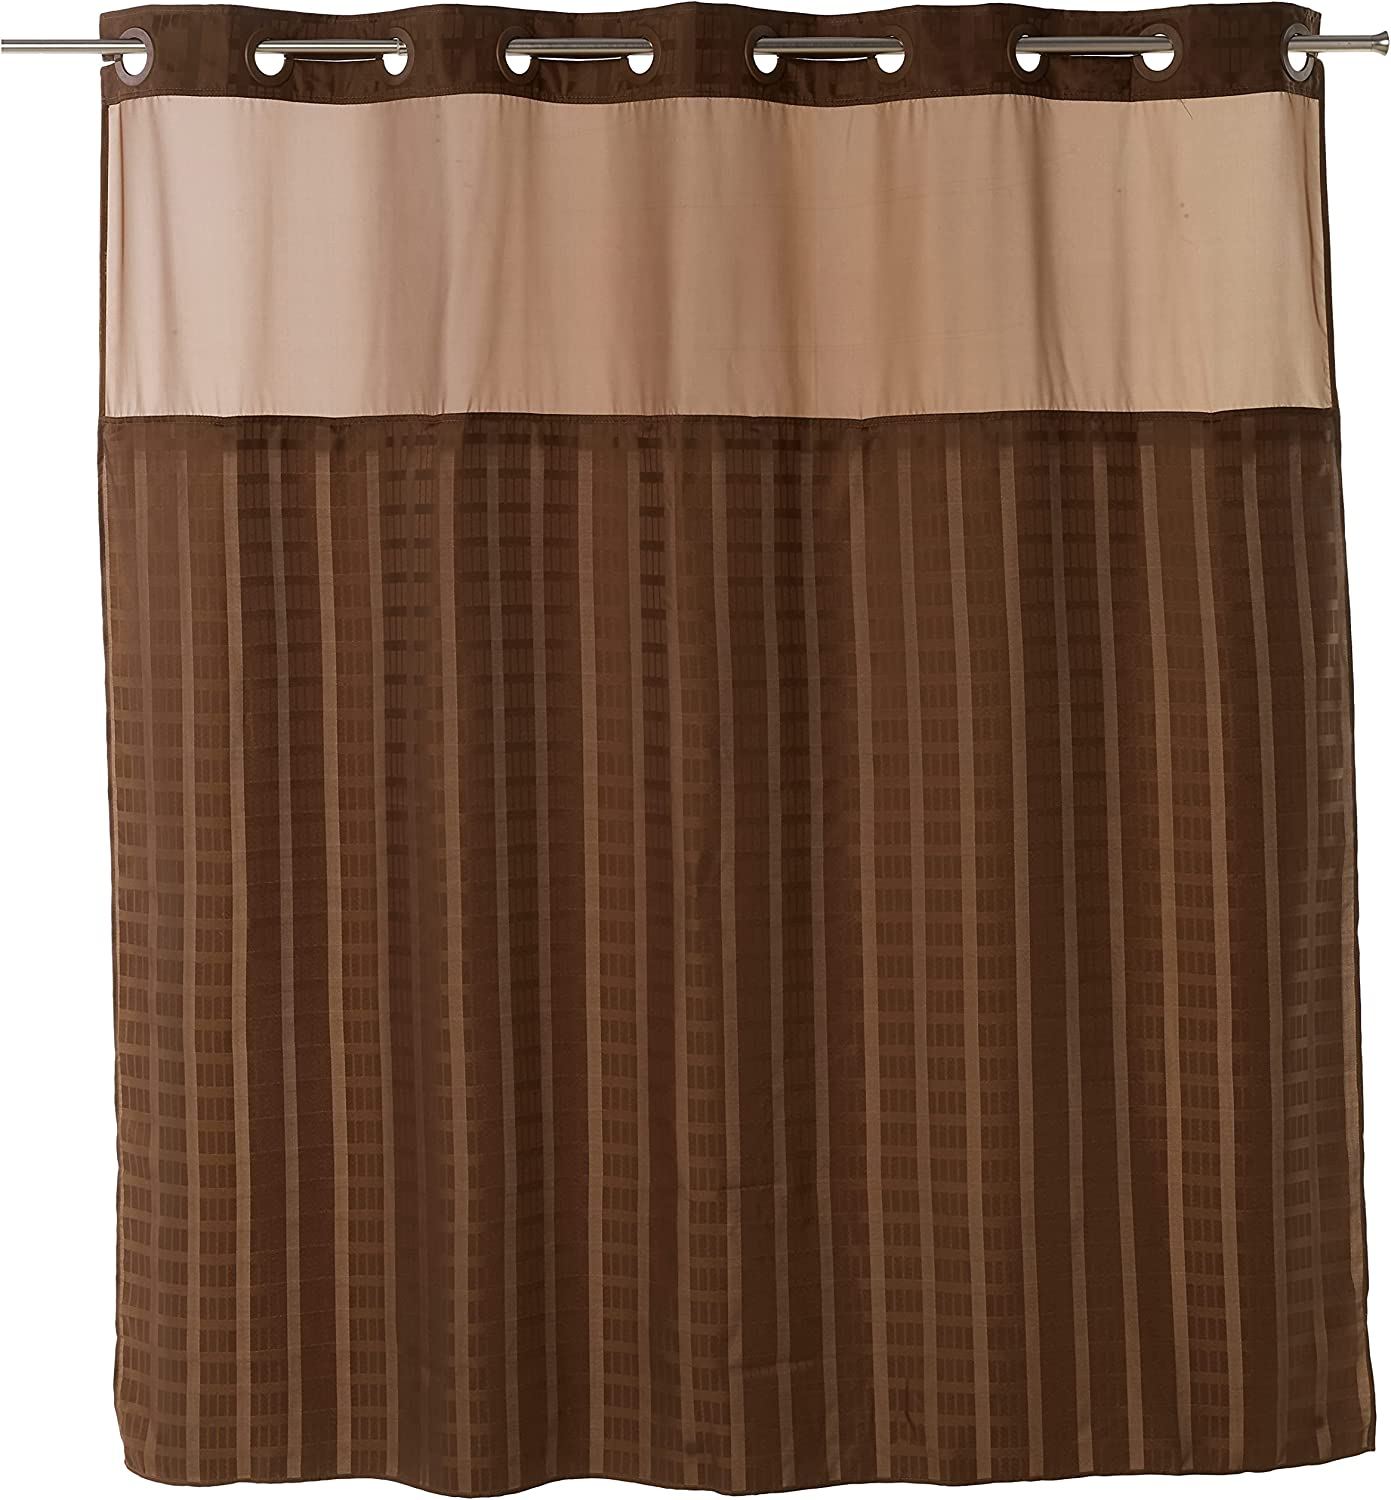 Hookless Madison Polyester Shower Curtain Discount mail order with P Resistant OFFer Water